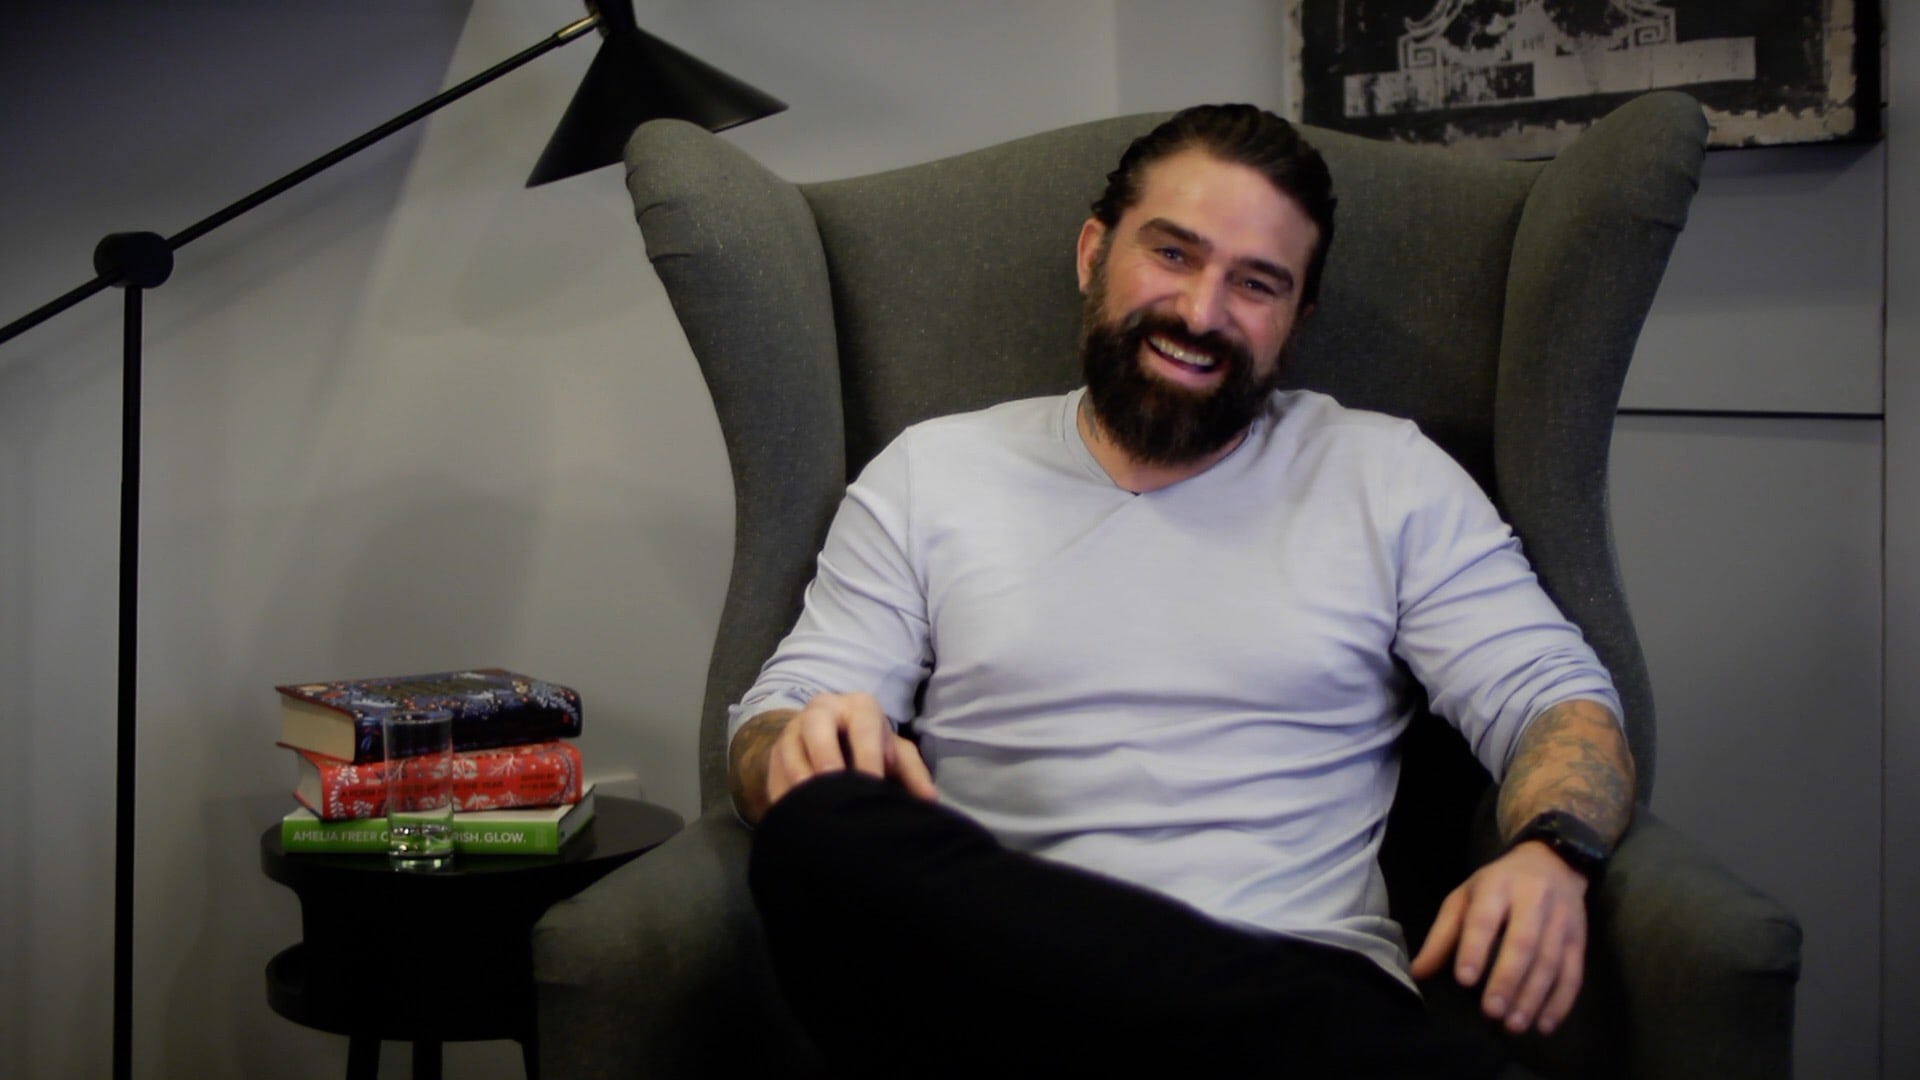 Filming with Channel 4's Ant Middleton